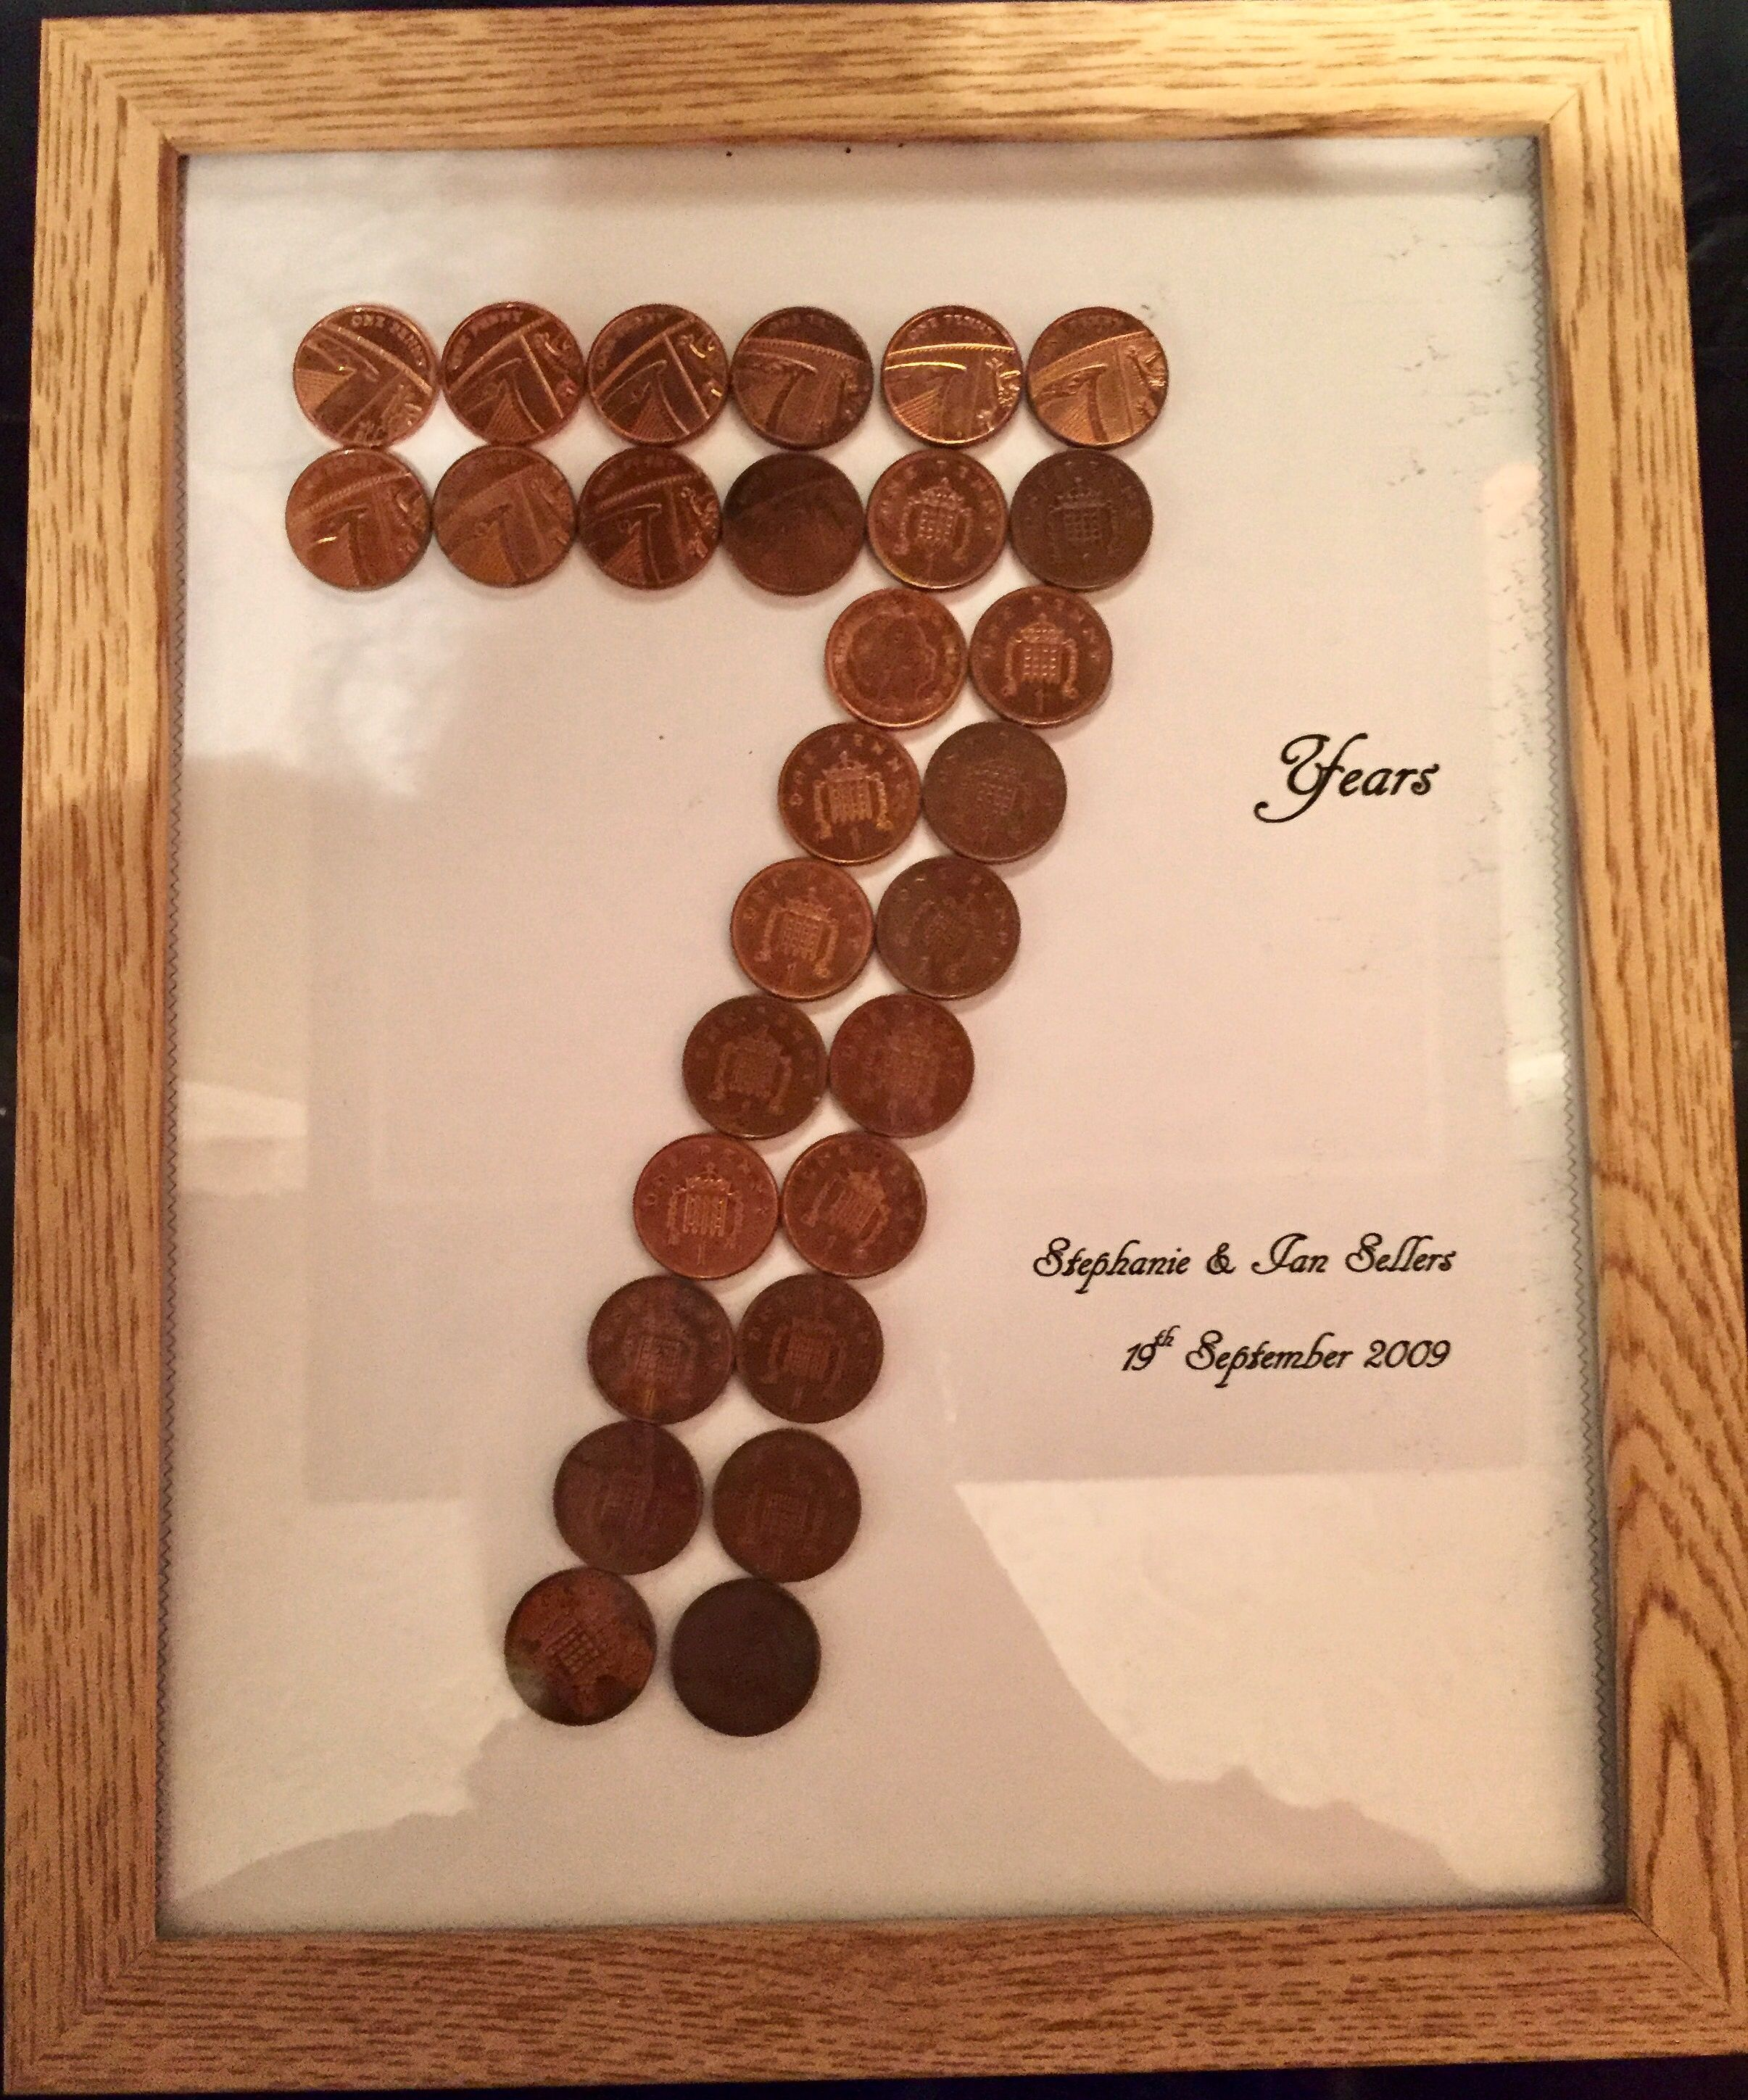 7th wedding anniversary (copper) gift Wedding